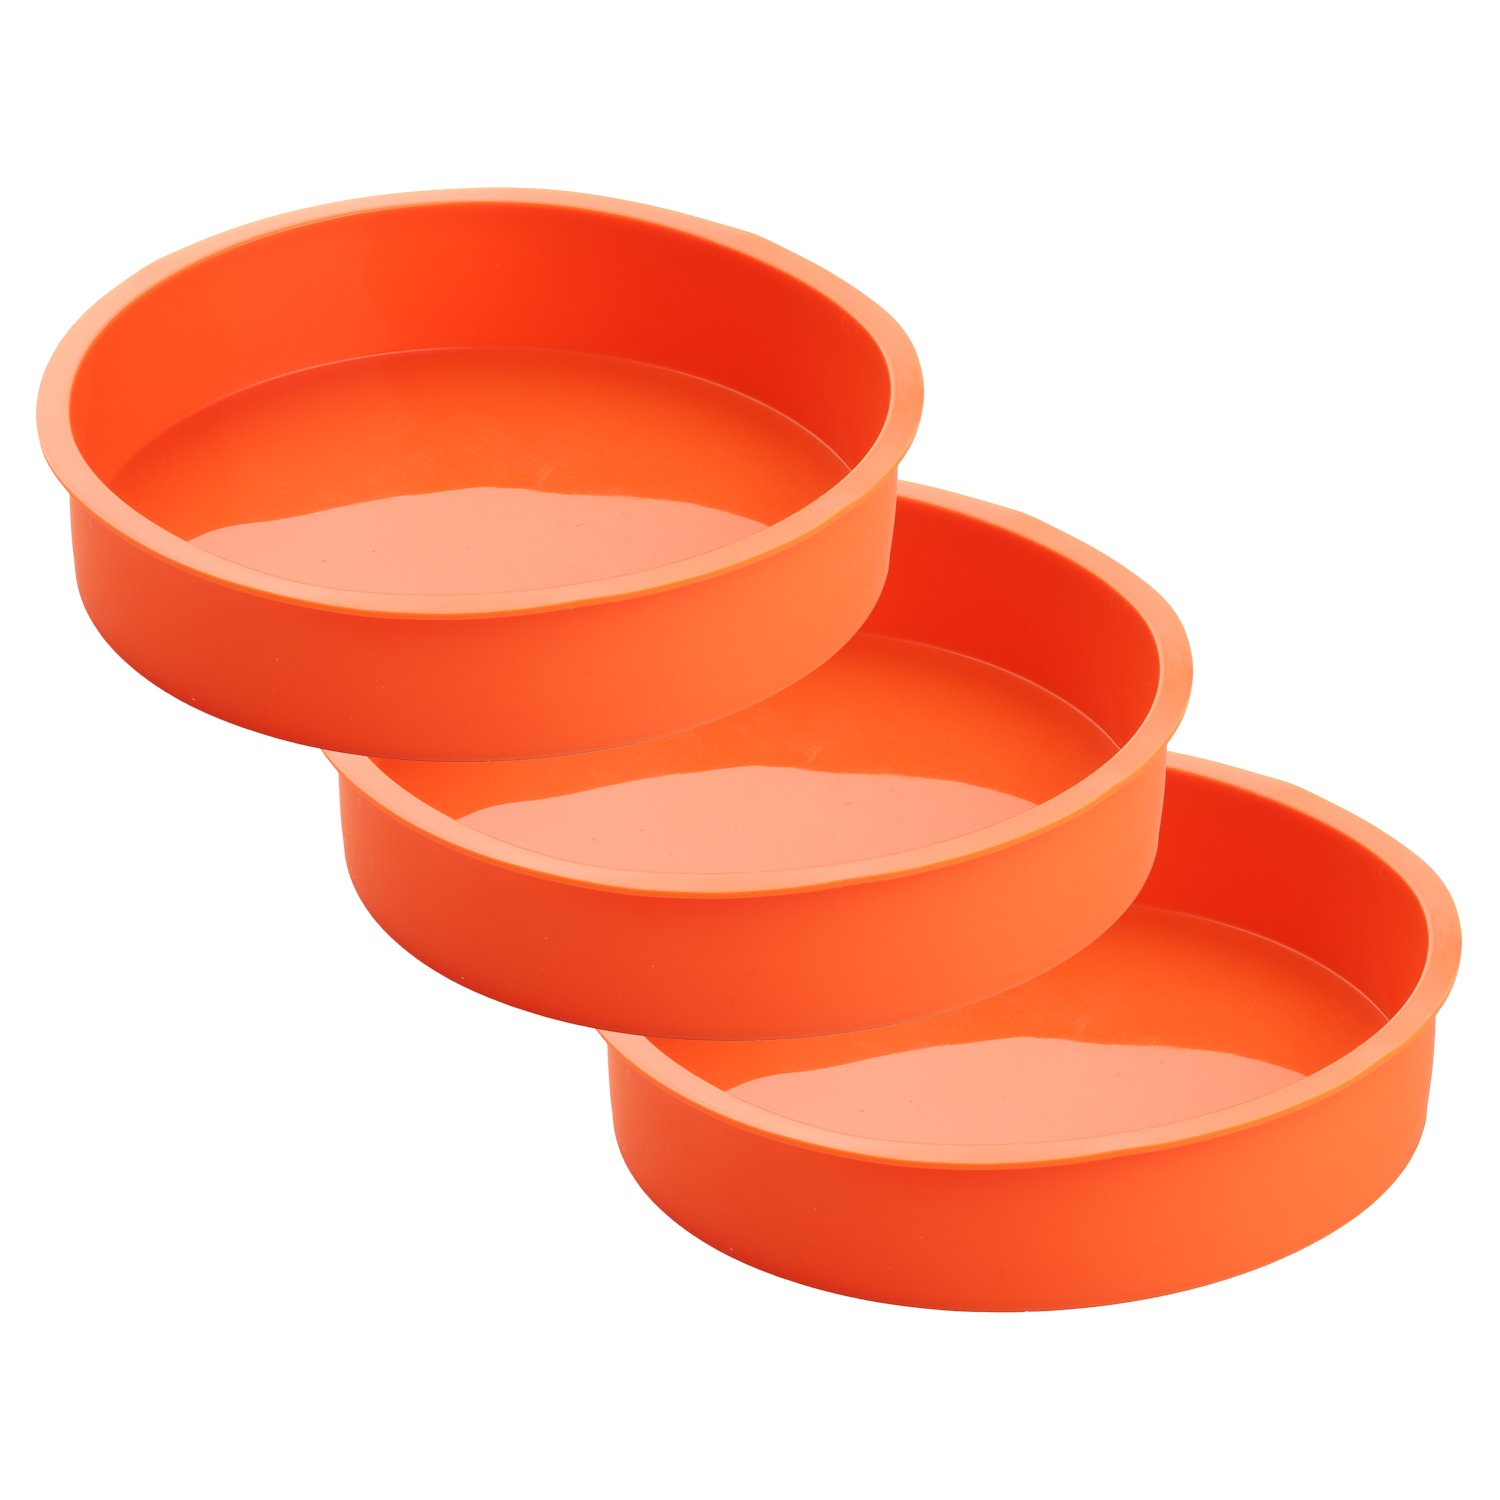 3 Piece Round Silicone 7 ¼ Inch Cake Mold Baking Pan Set, Includes 5 Laminated Greaseproof Cardboard Cake Circles by A Baker and Cook by A Baker and Cook (Image #2)